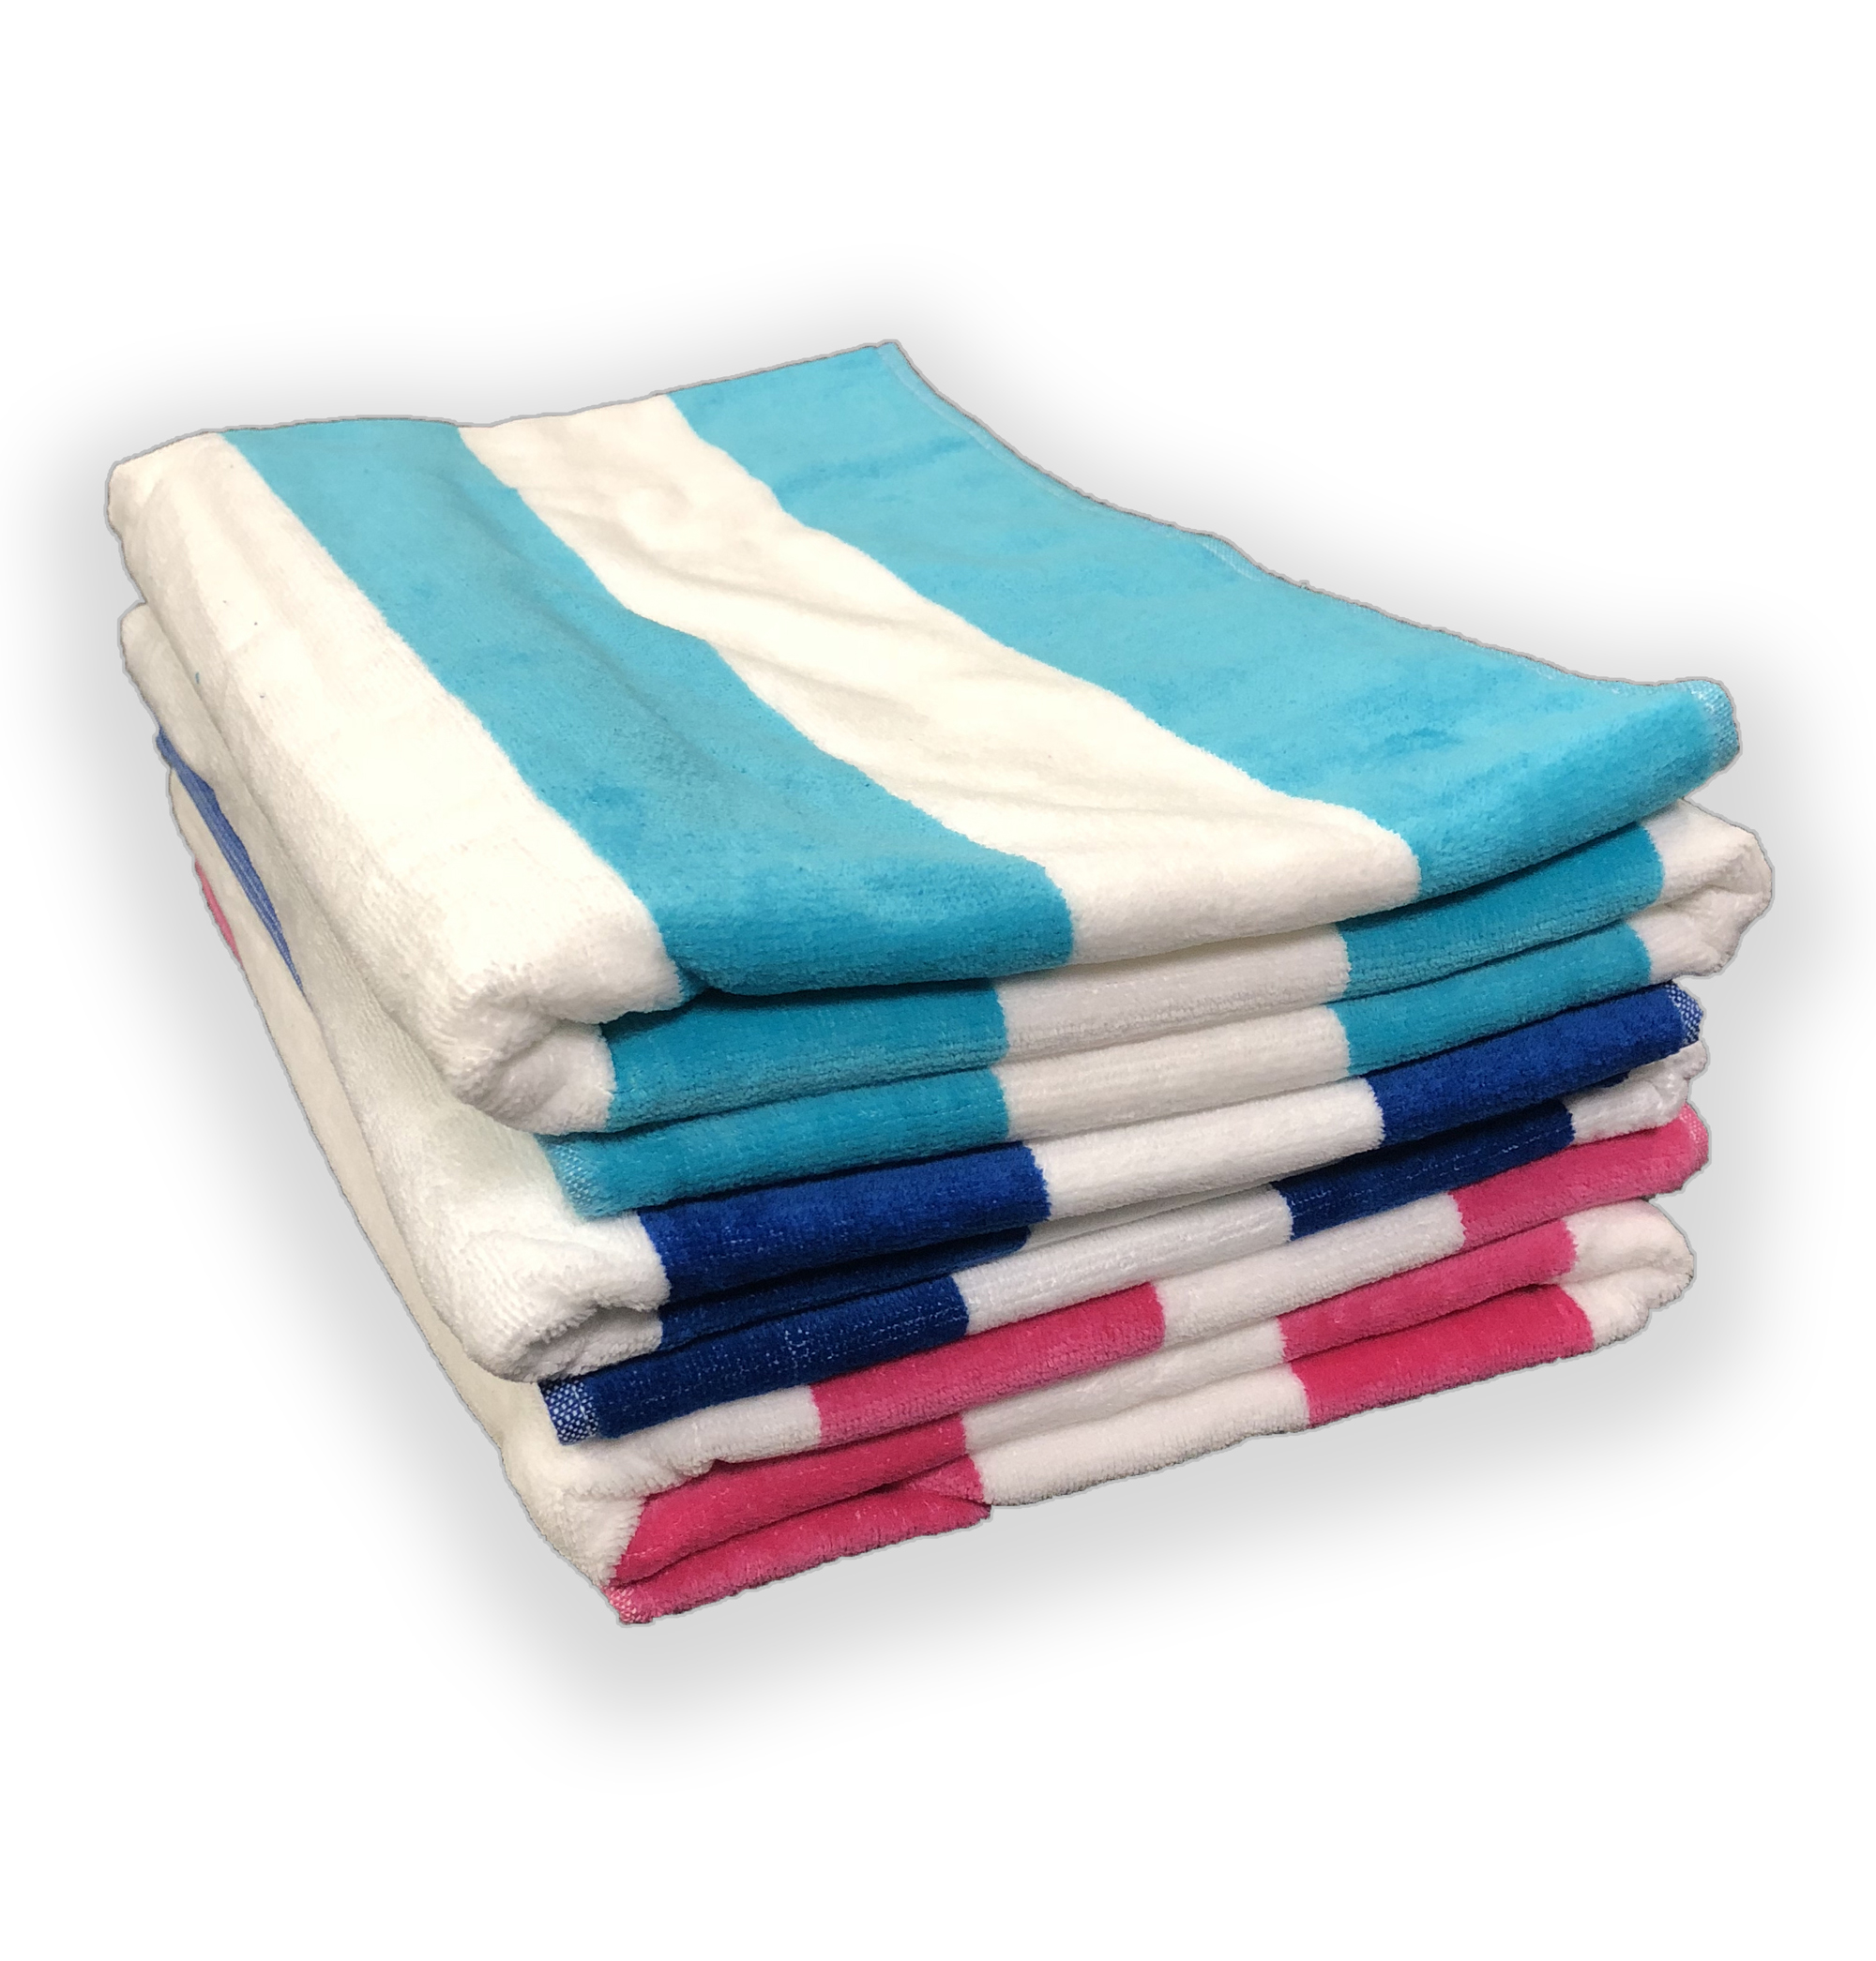 EMBROIDERED 35x70 Terry Beach Towels Cotton Velour Cabana Stripe 18.75 Lbs per Dz. 100% Cotton.